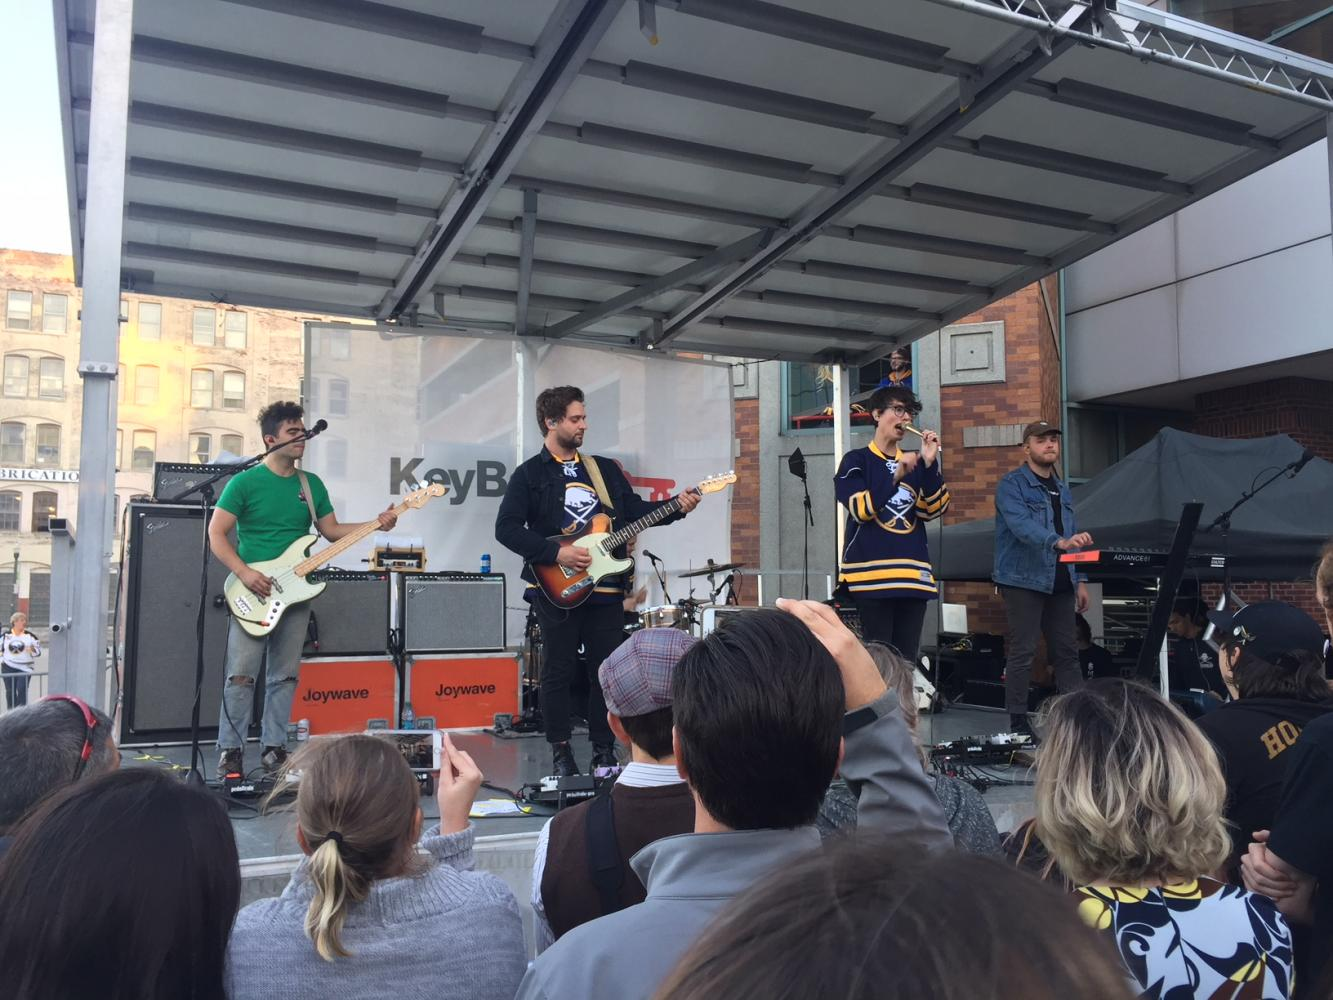 Rochester natives Joywave kicked off the new Sabres season with a free show outside the Key Bank Center.